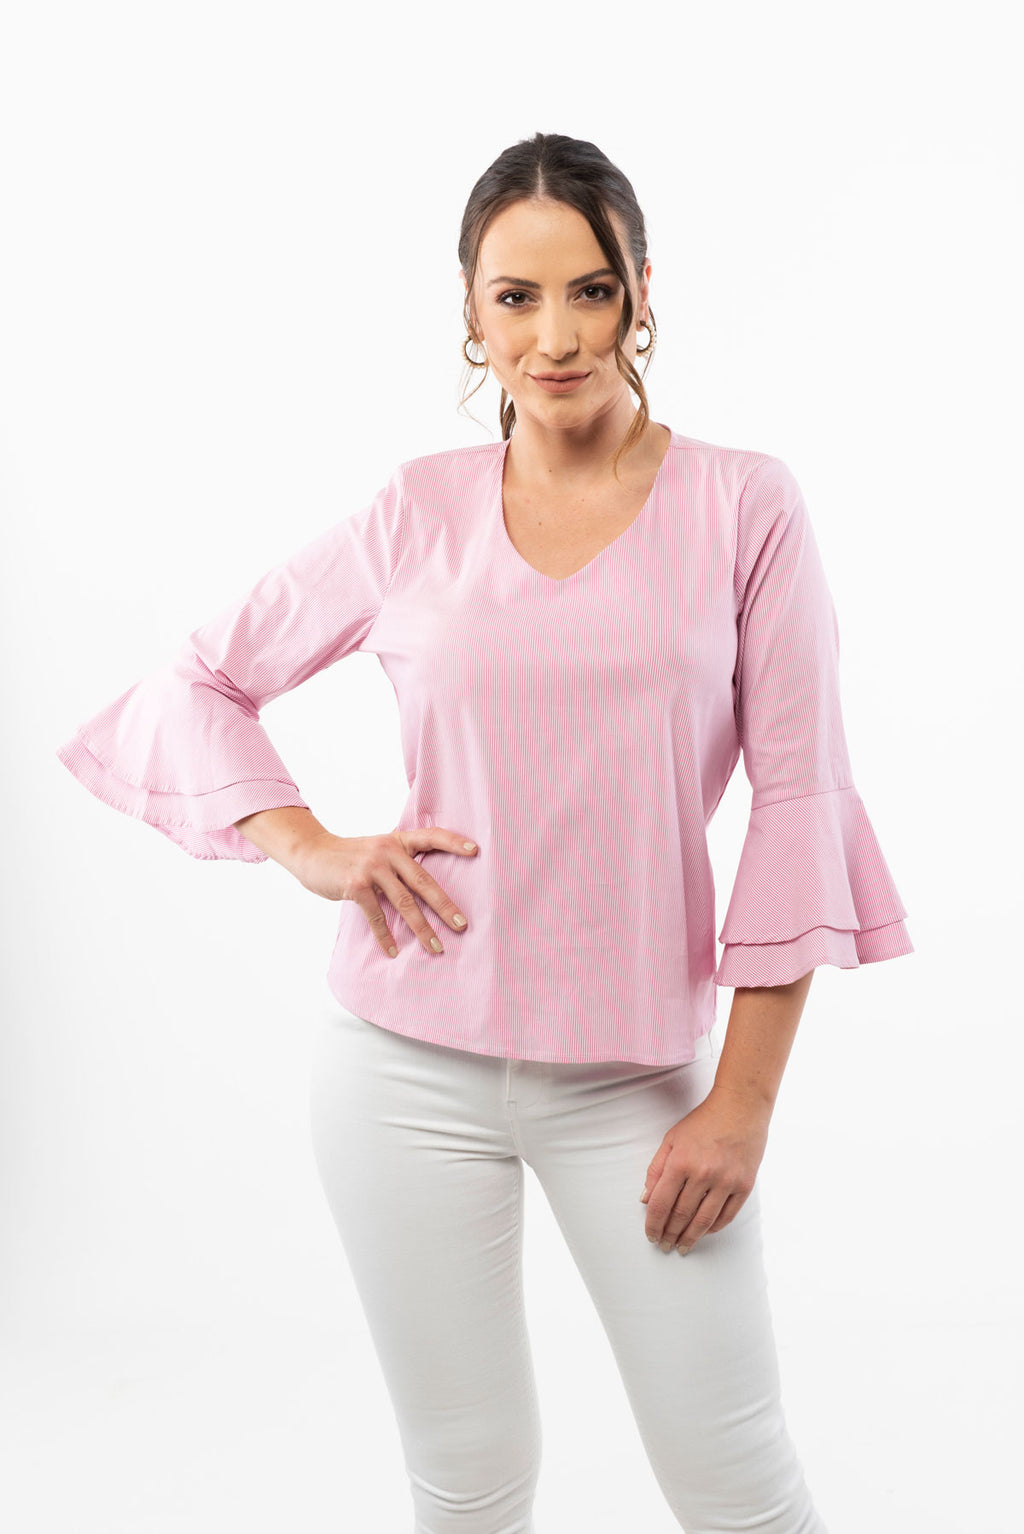 V Neck Pink Striped Blouse - 3/4 Bell Sleeve